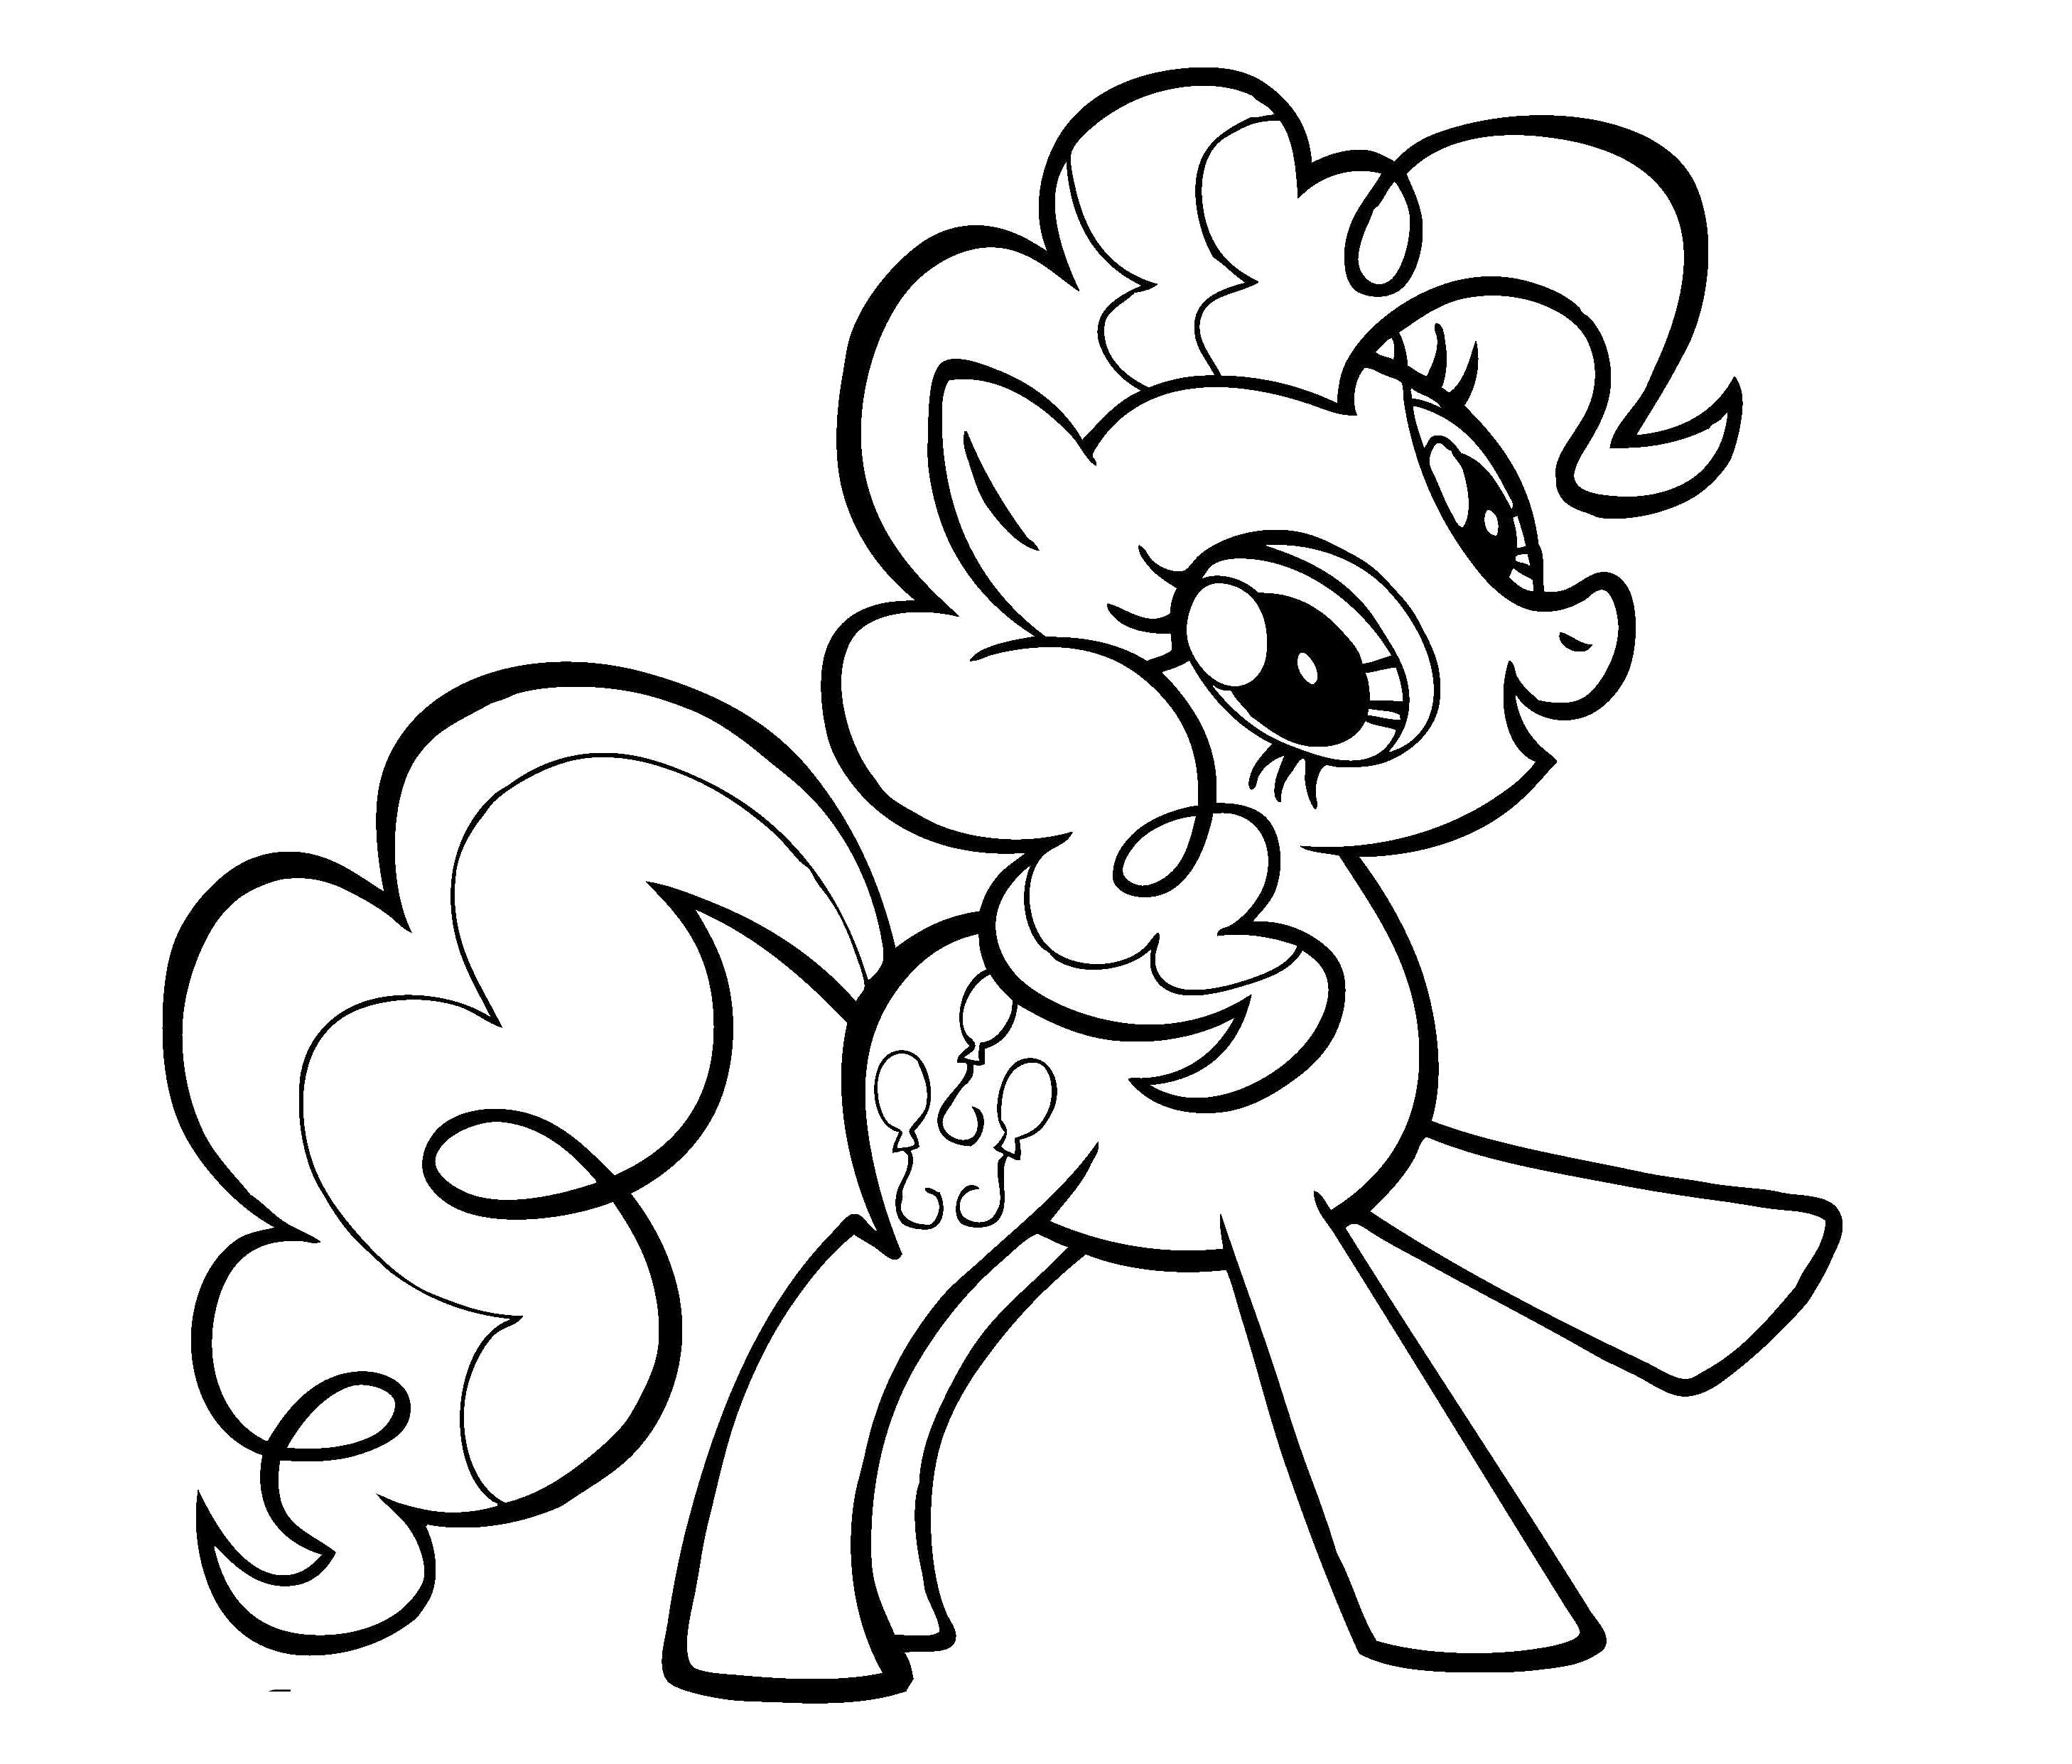 My Little Pony Coloring Pages Pinkie Pie And Rainbow Dash My Little Pony Coloring Pages P My Little Pony Coloring My Little Pony Drawing Animal Coloring Pages